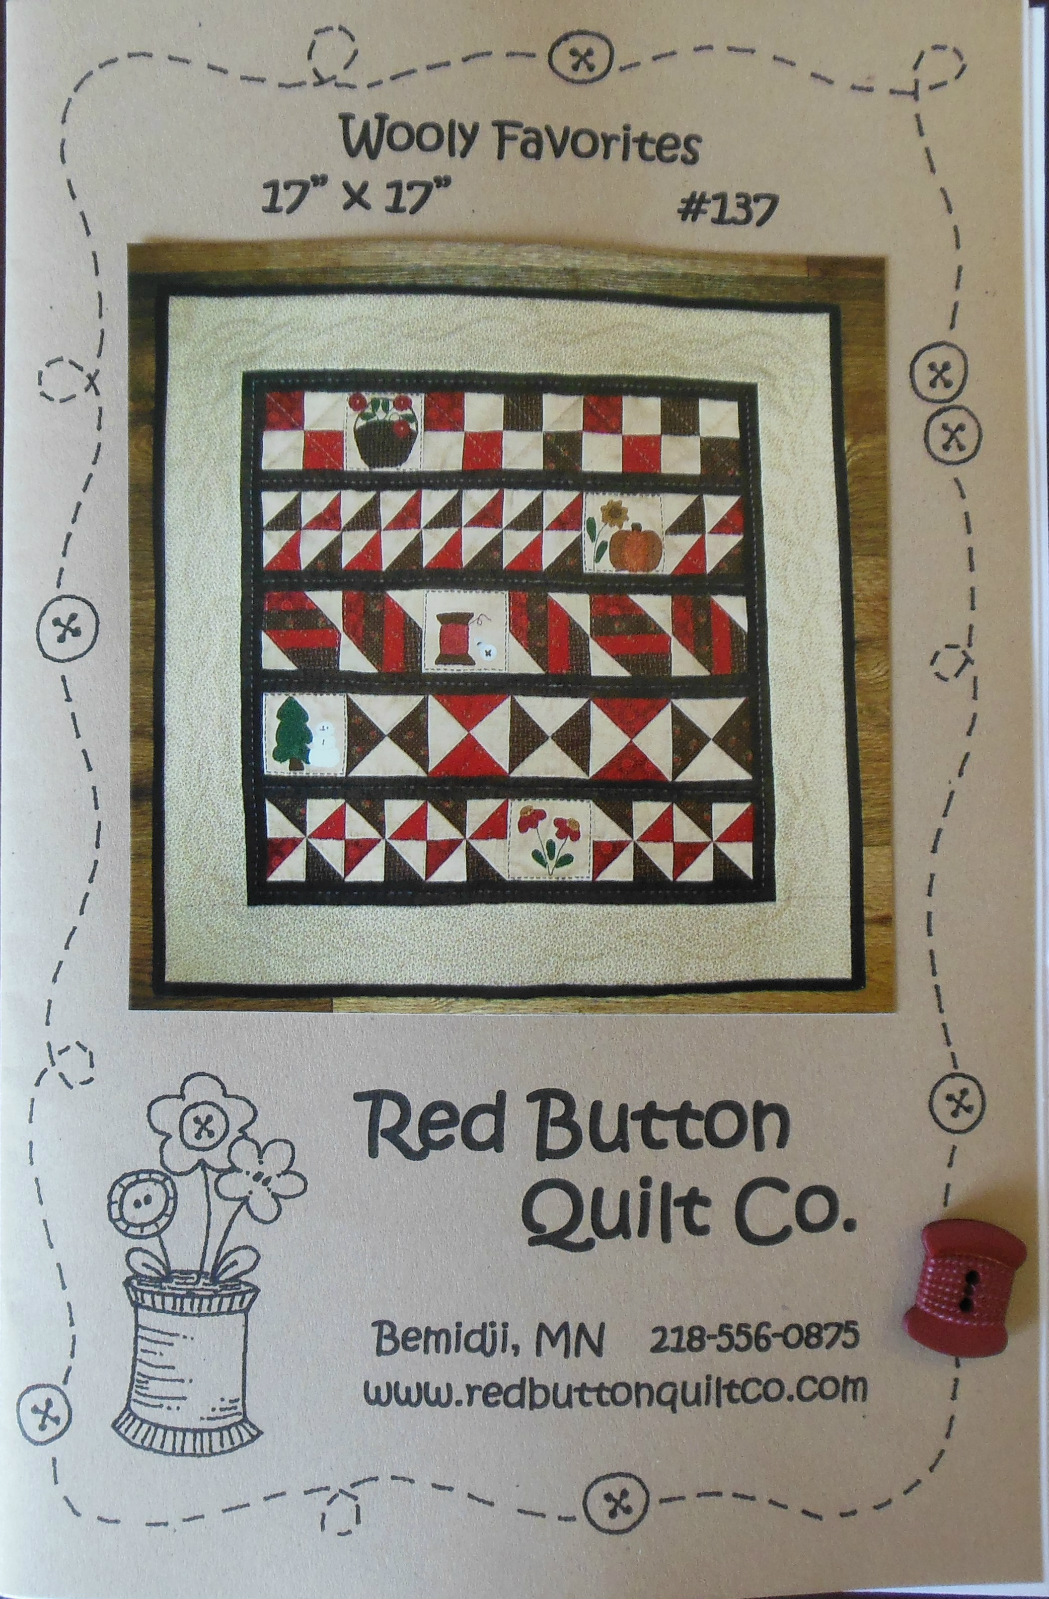 Fat Quarters Quilt Shop For all your quilting & fabric needs : Red ... : red button quilt co - Adamdwight.com